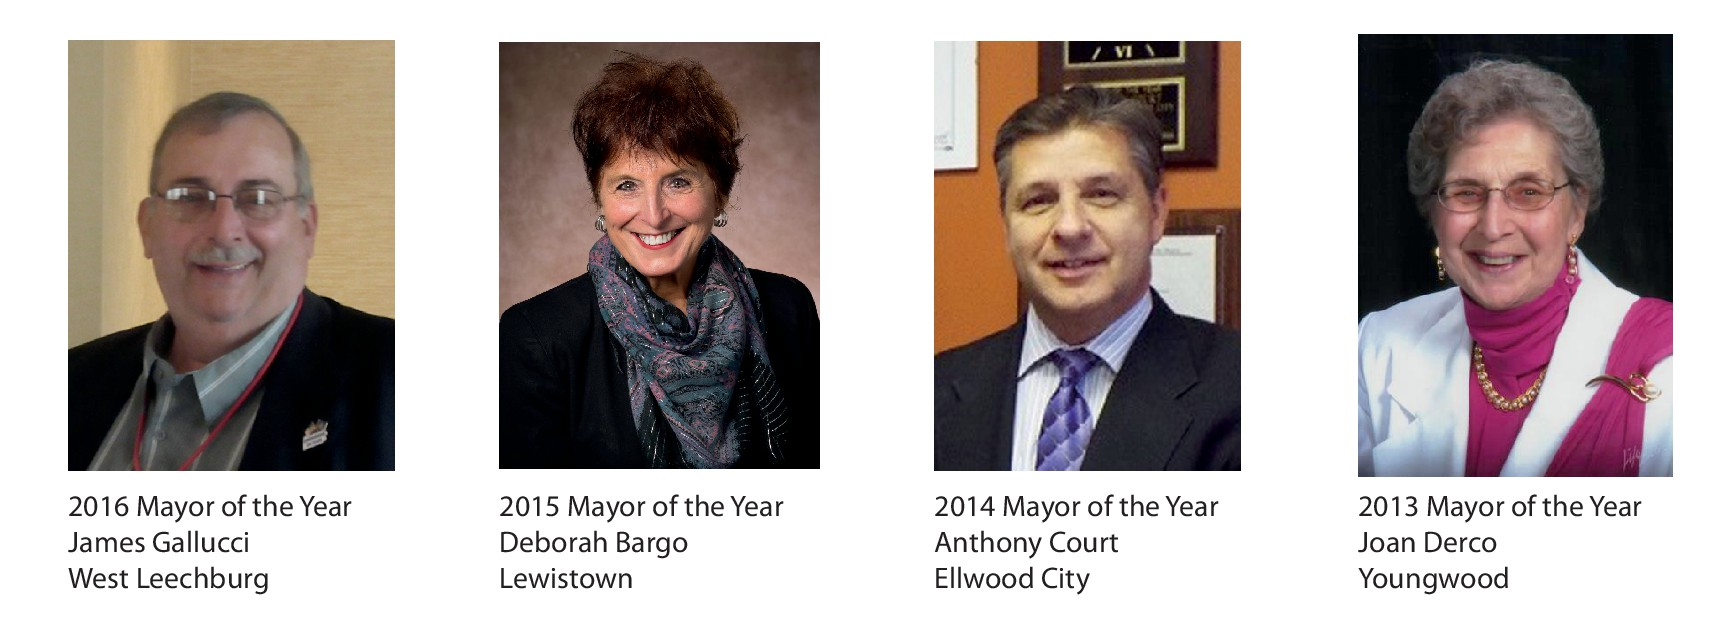 mayor of the year